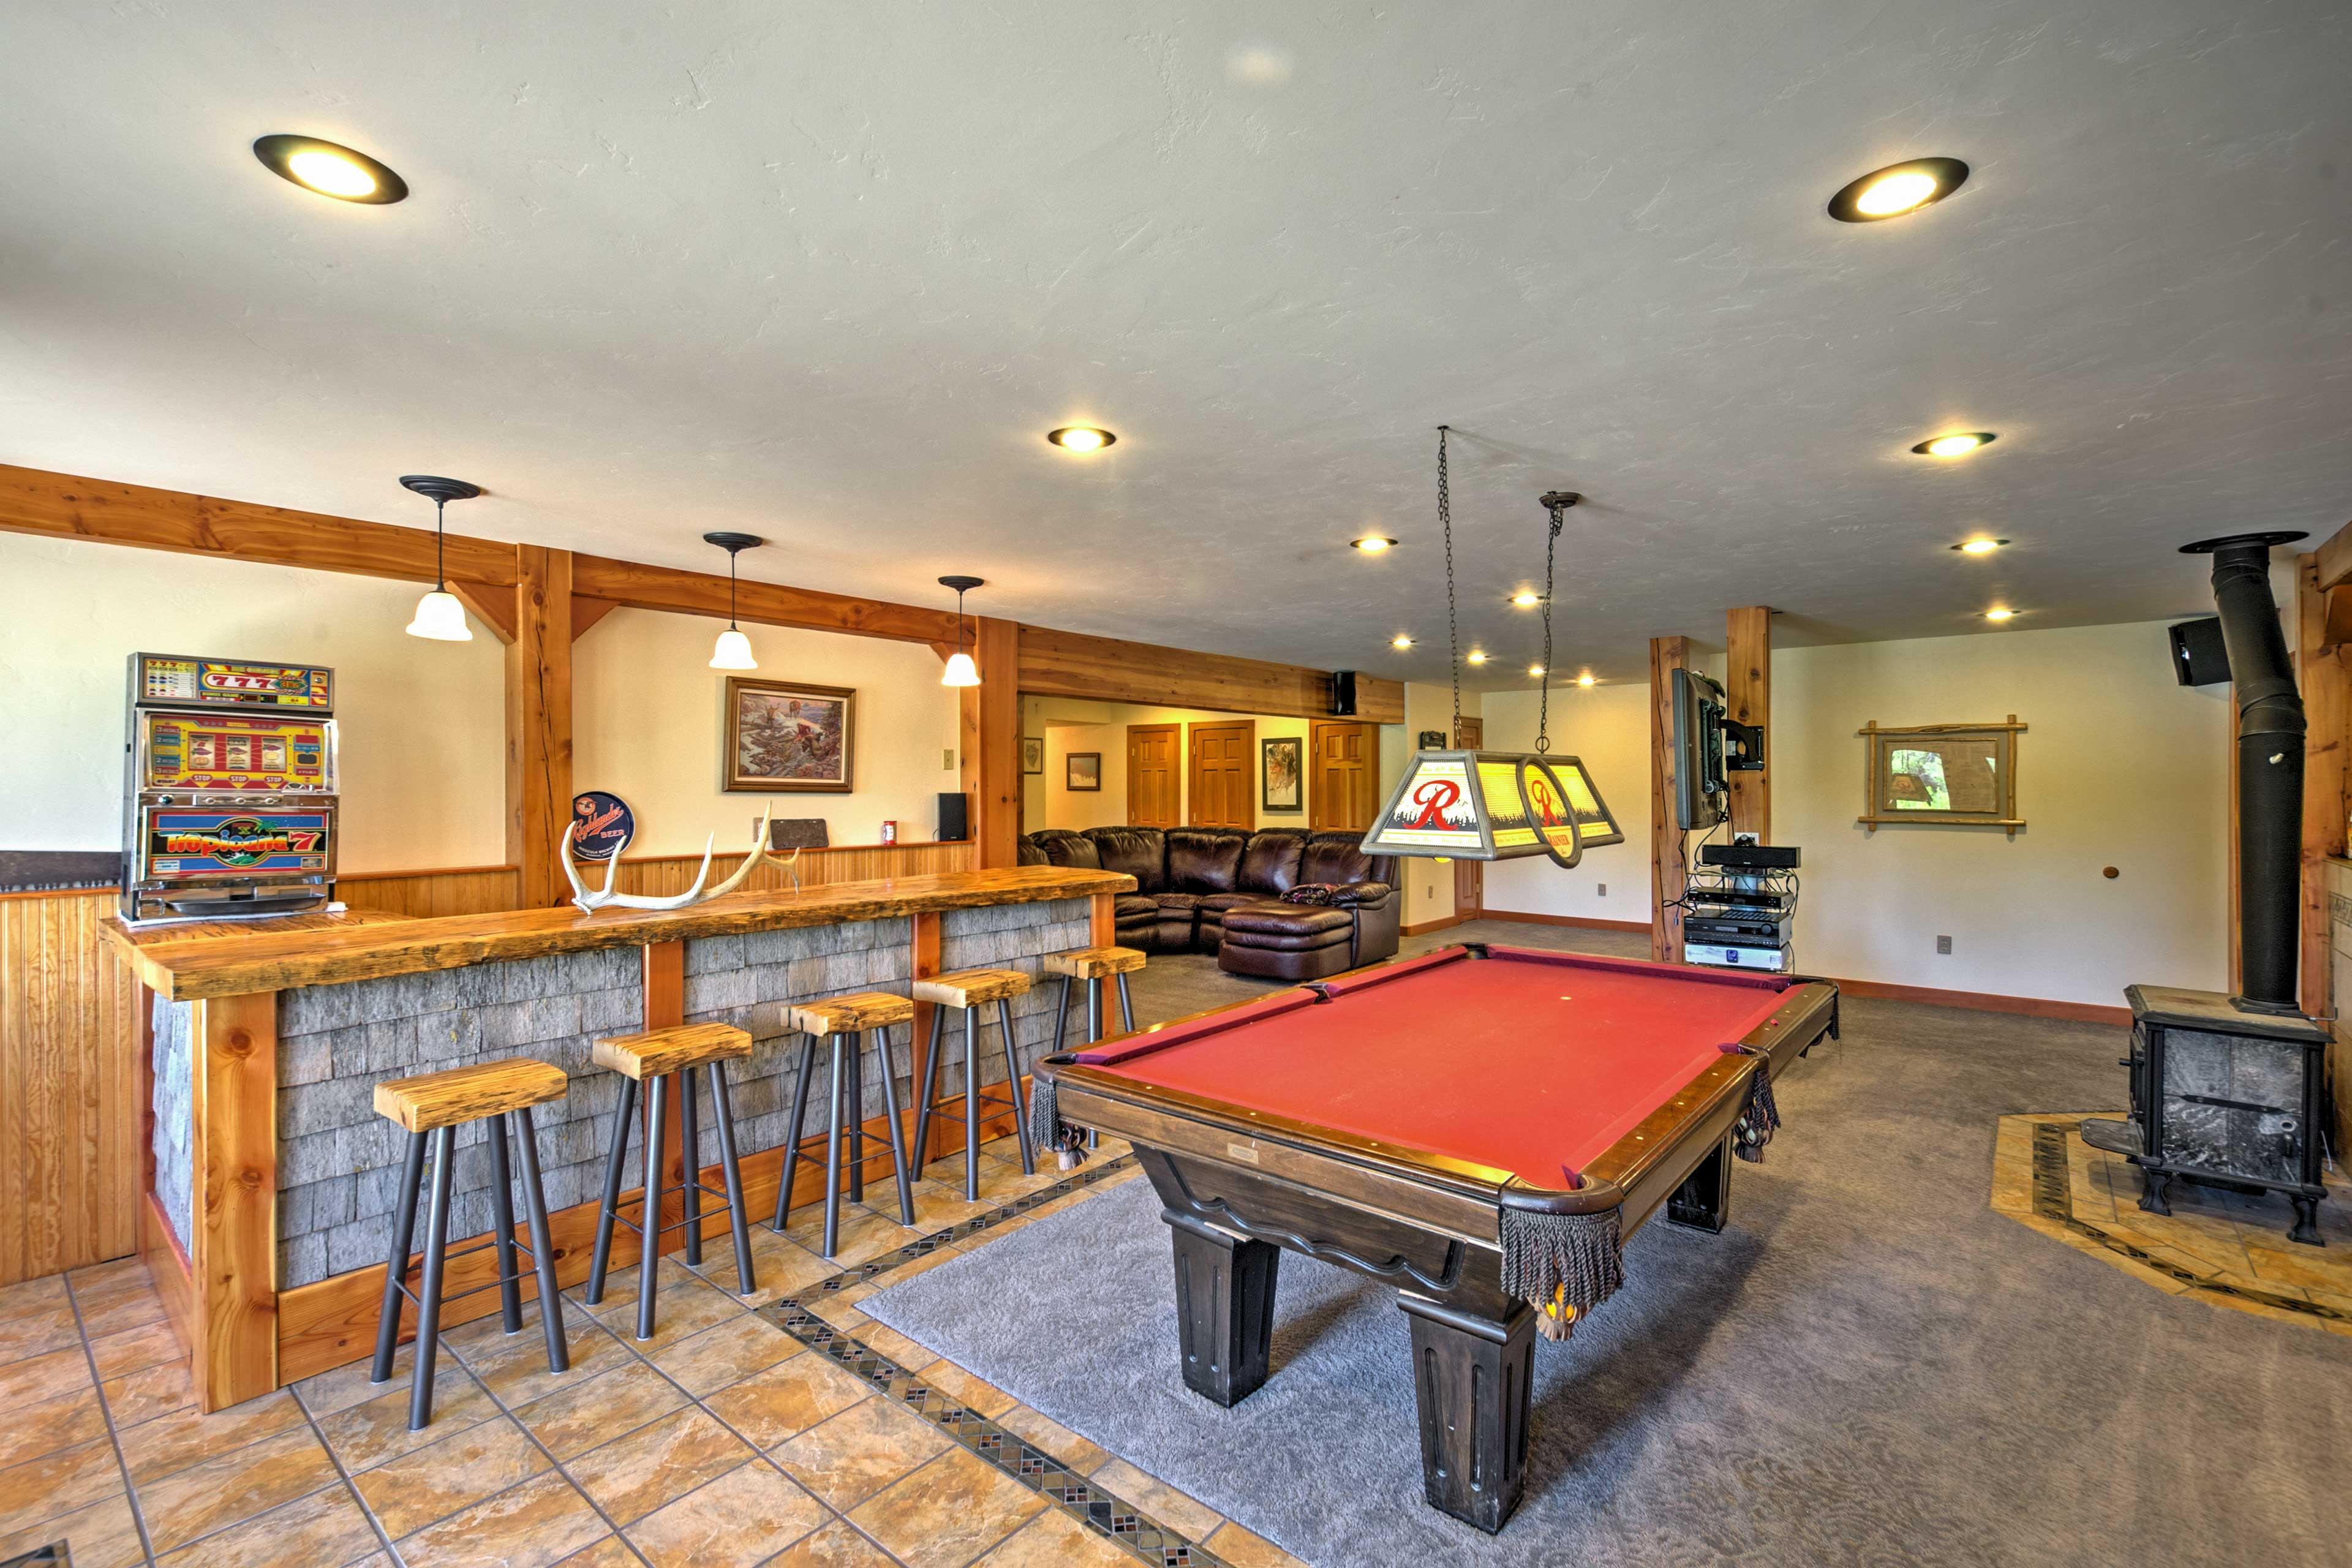 Head downstairs to watch TV or challenge your companions to a game of pool.